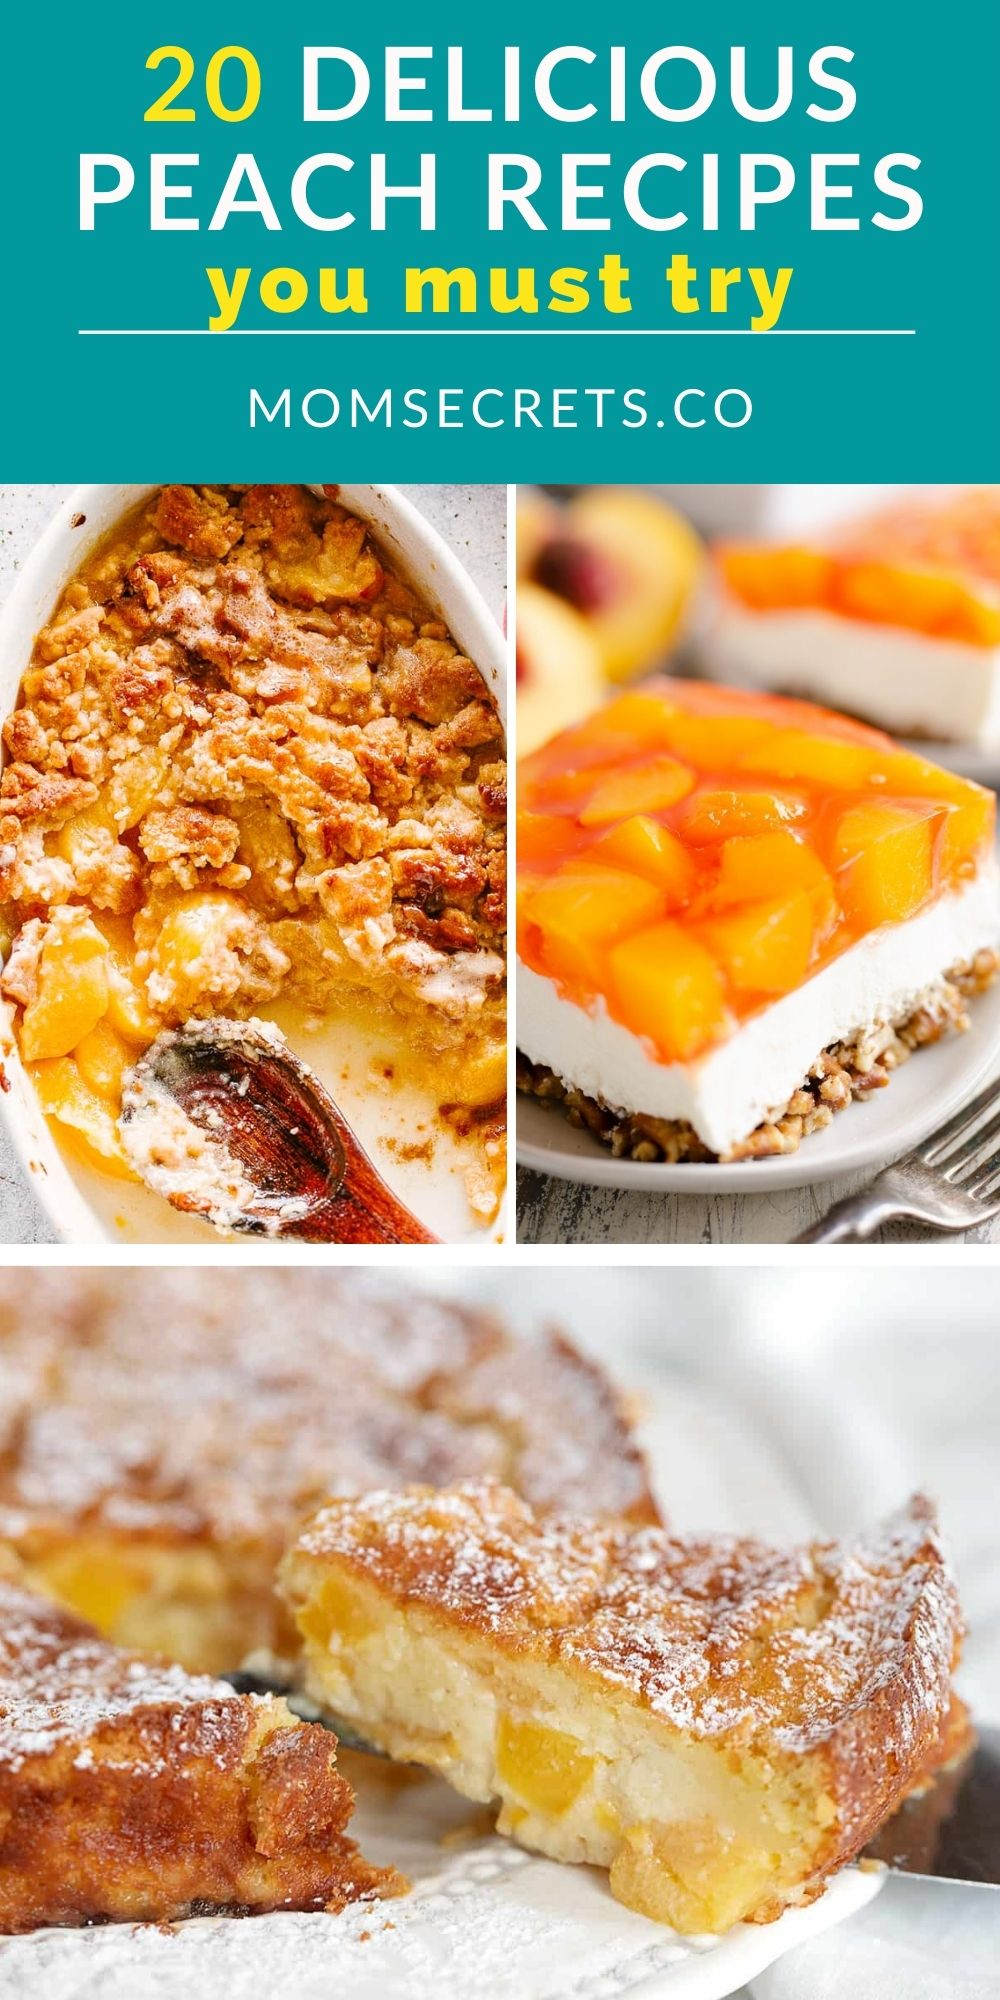 It's peach season! So I made a collection of peach recipes that include drinks, desserts, and more to help you celebrate this sweet summer fruit.